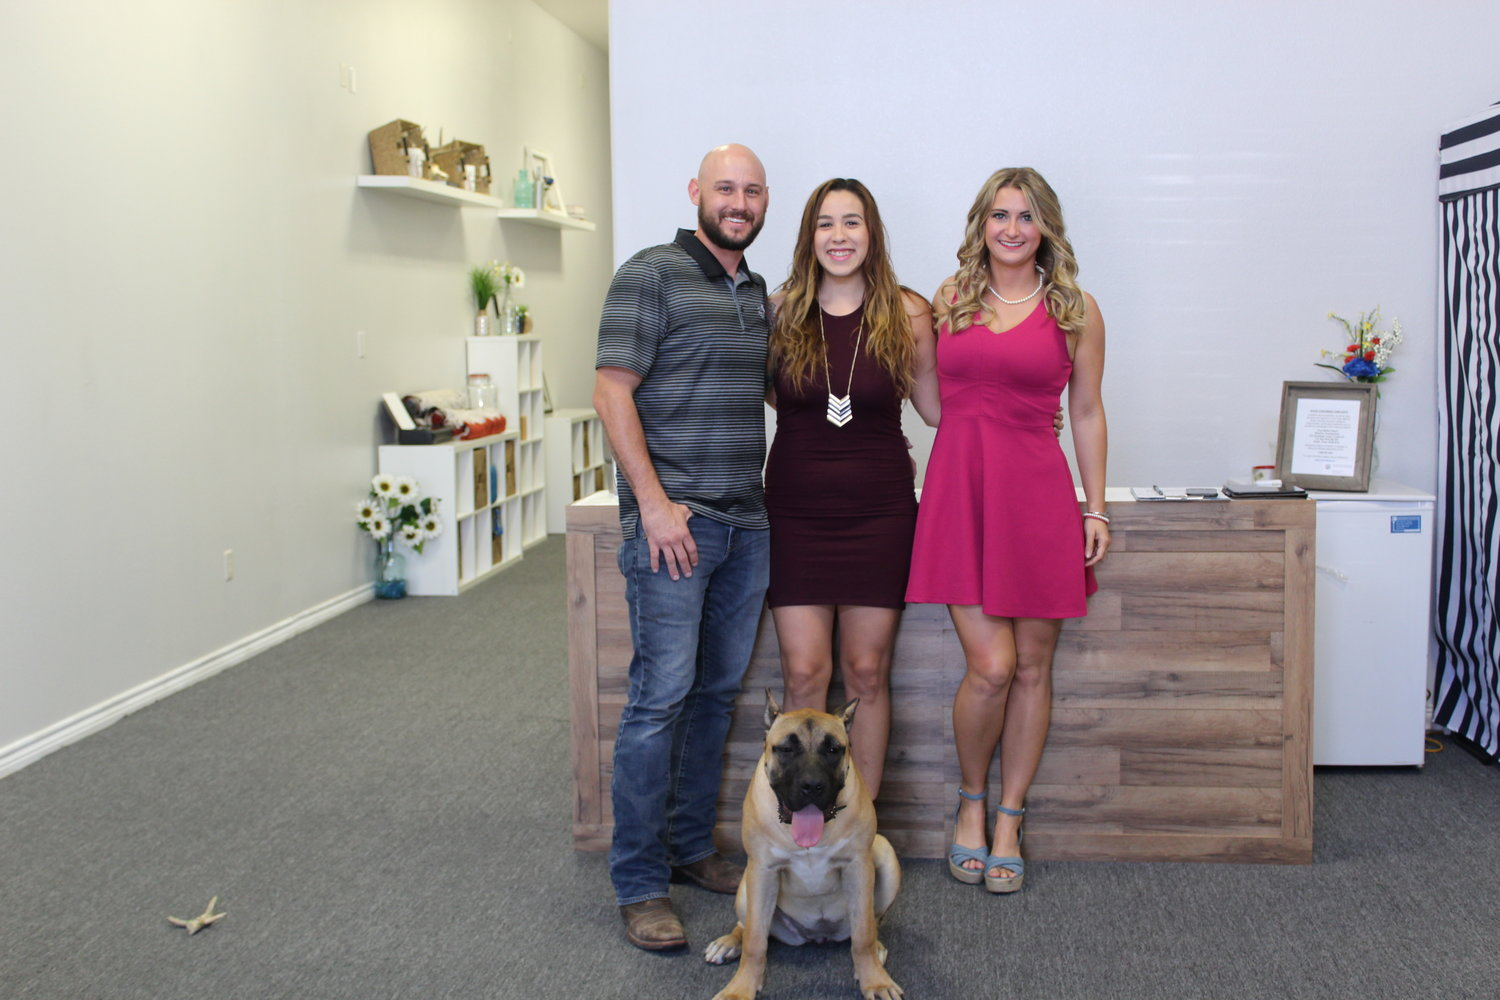 Owners Justin Gustovich and Anna Silvaand marketing and event coordinator Brooks Roach (L-R) stand in their Buck to Basics yoga studio space in Leander.